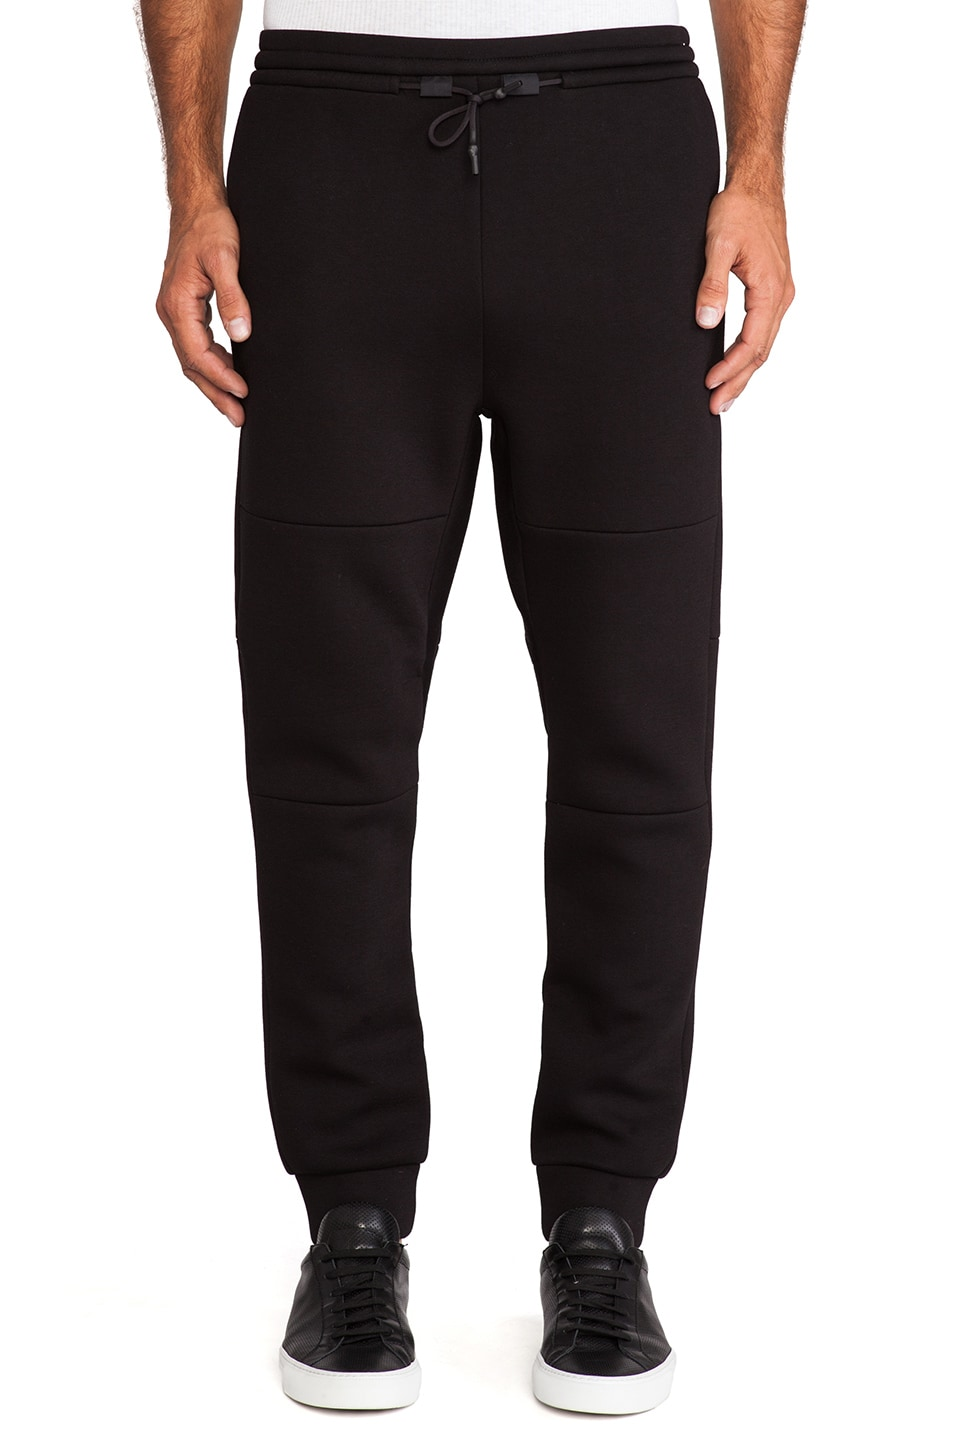 T by Alexander Wang Scuba Double Knit Sweatpants in Black